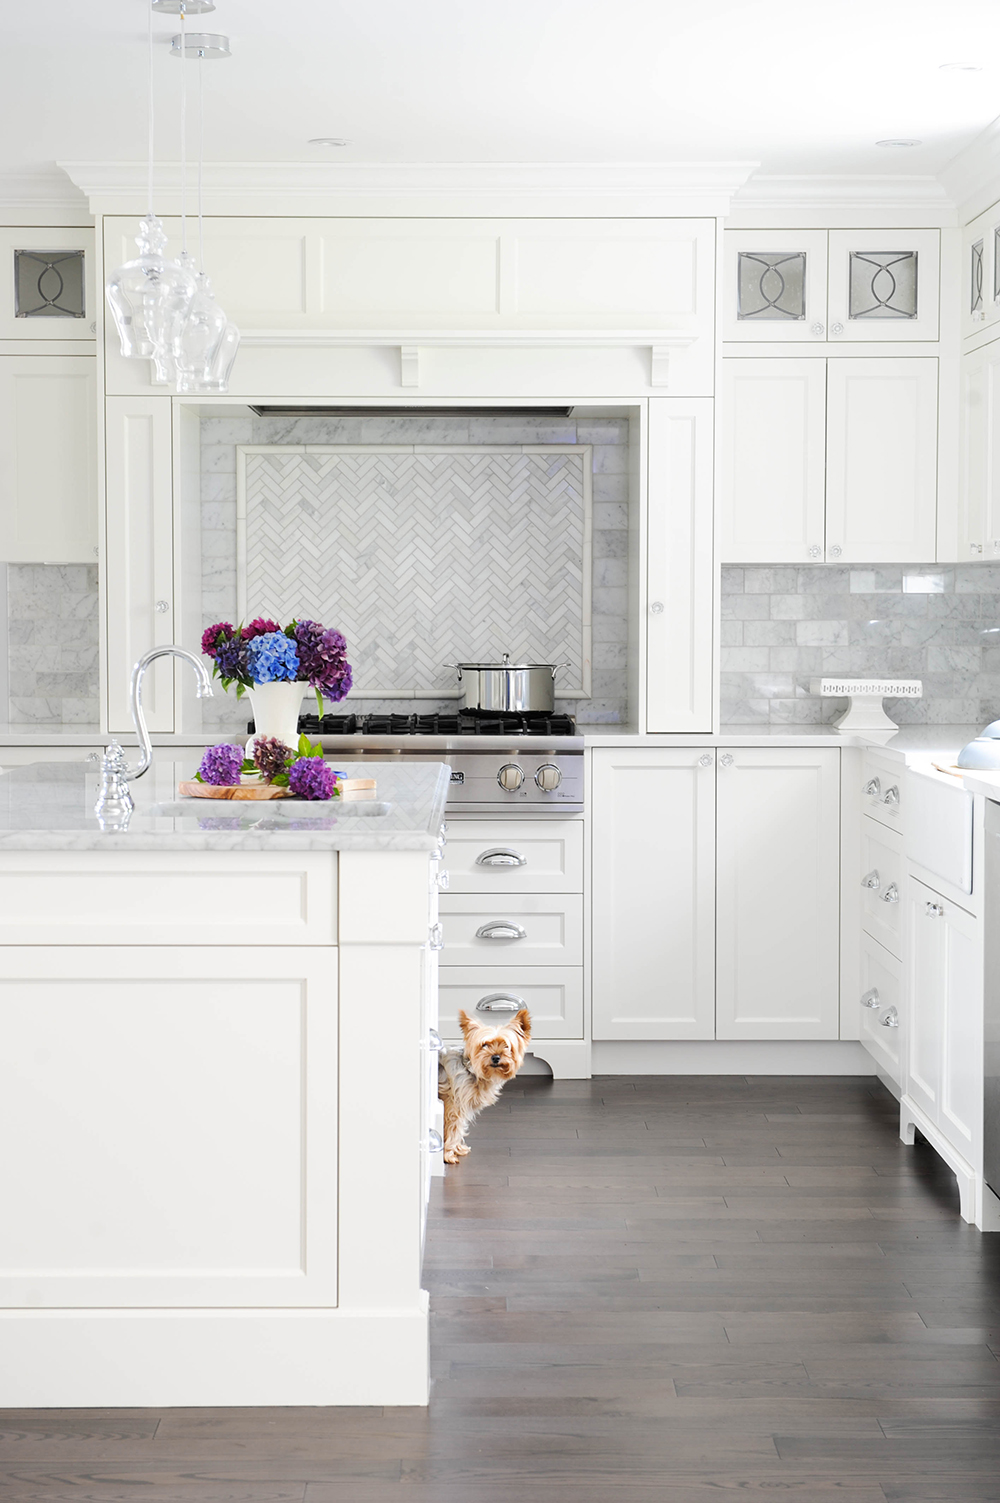 Tracey-Ayton-Photography-kitchen-1